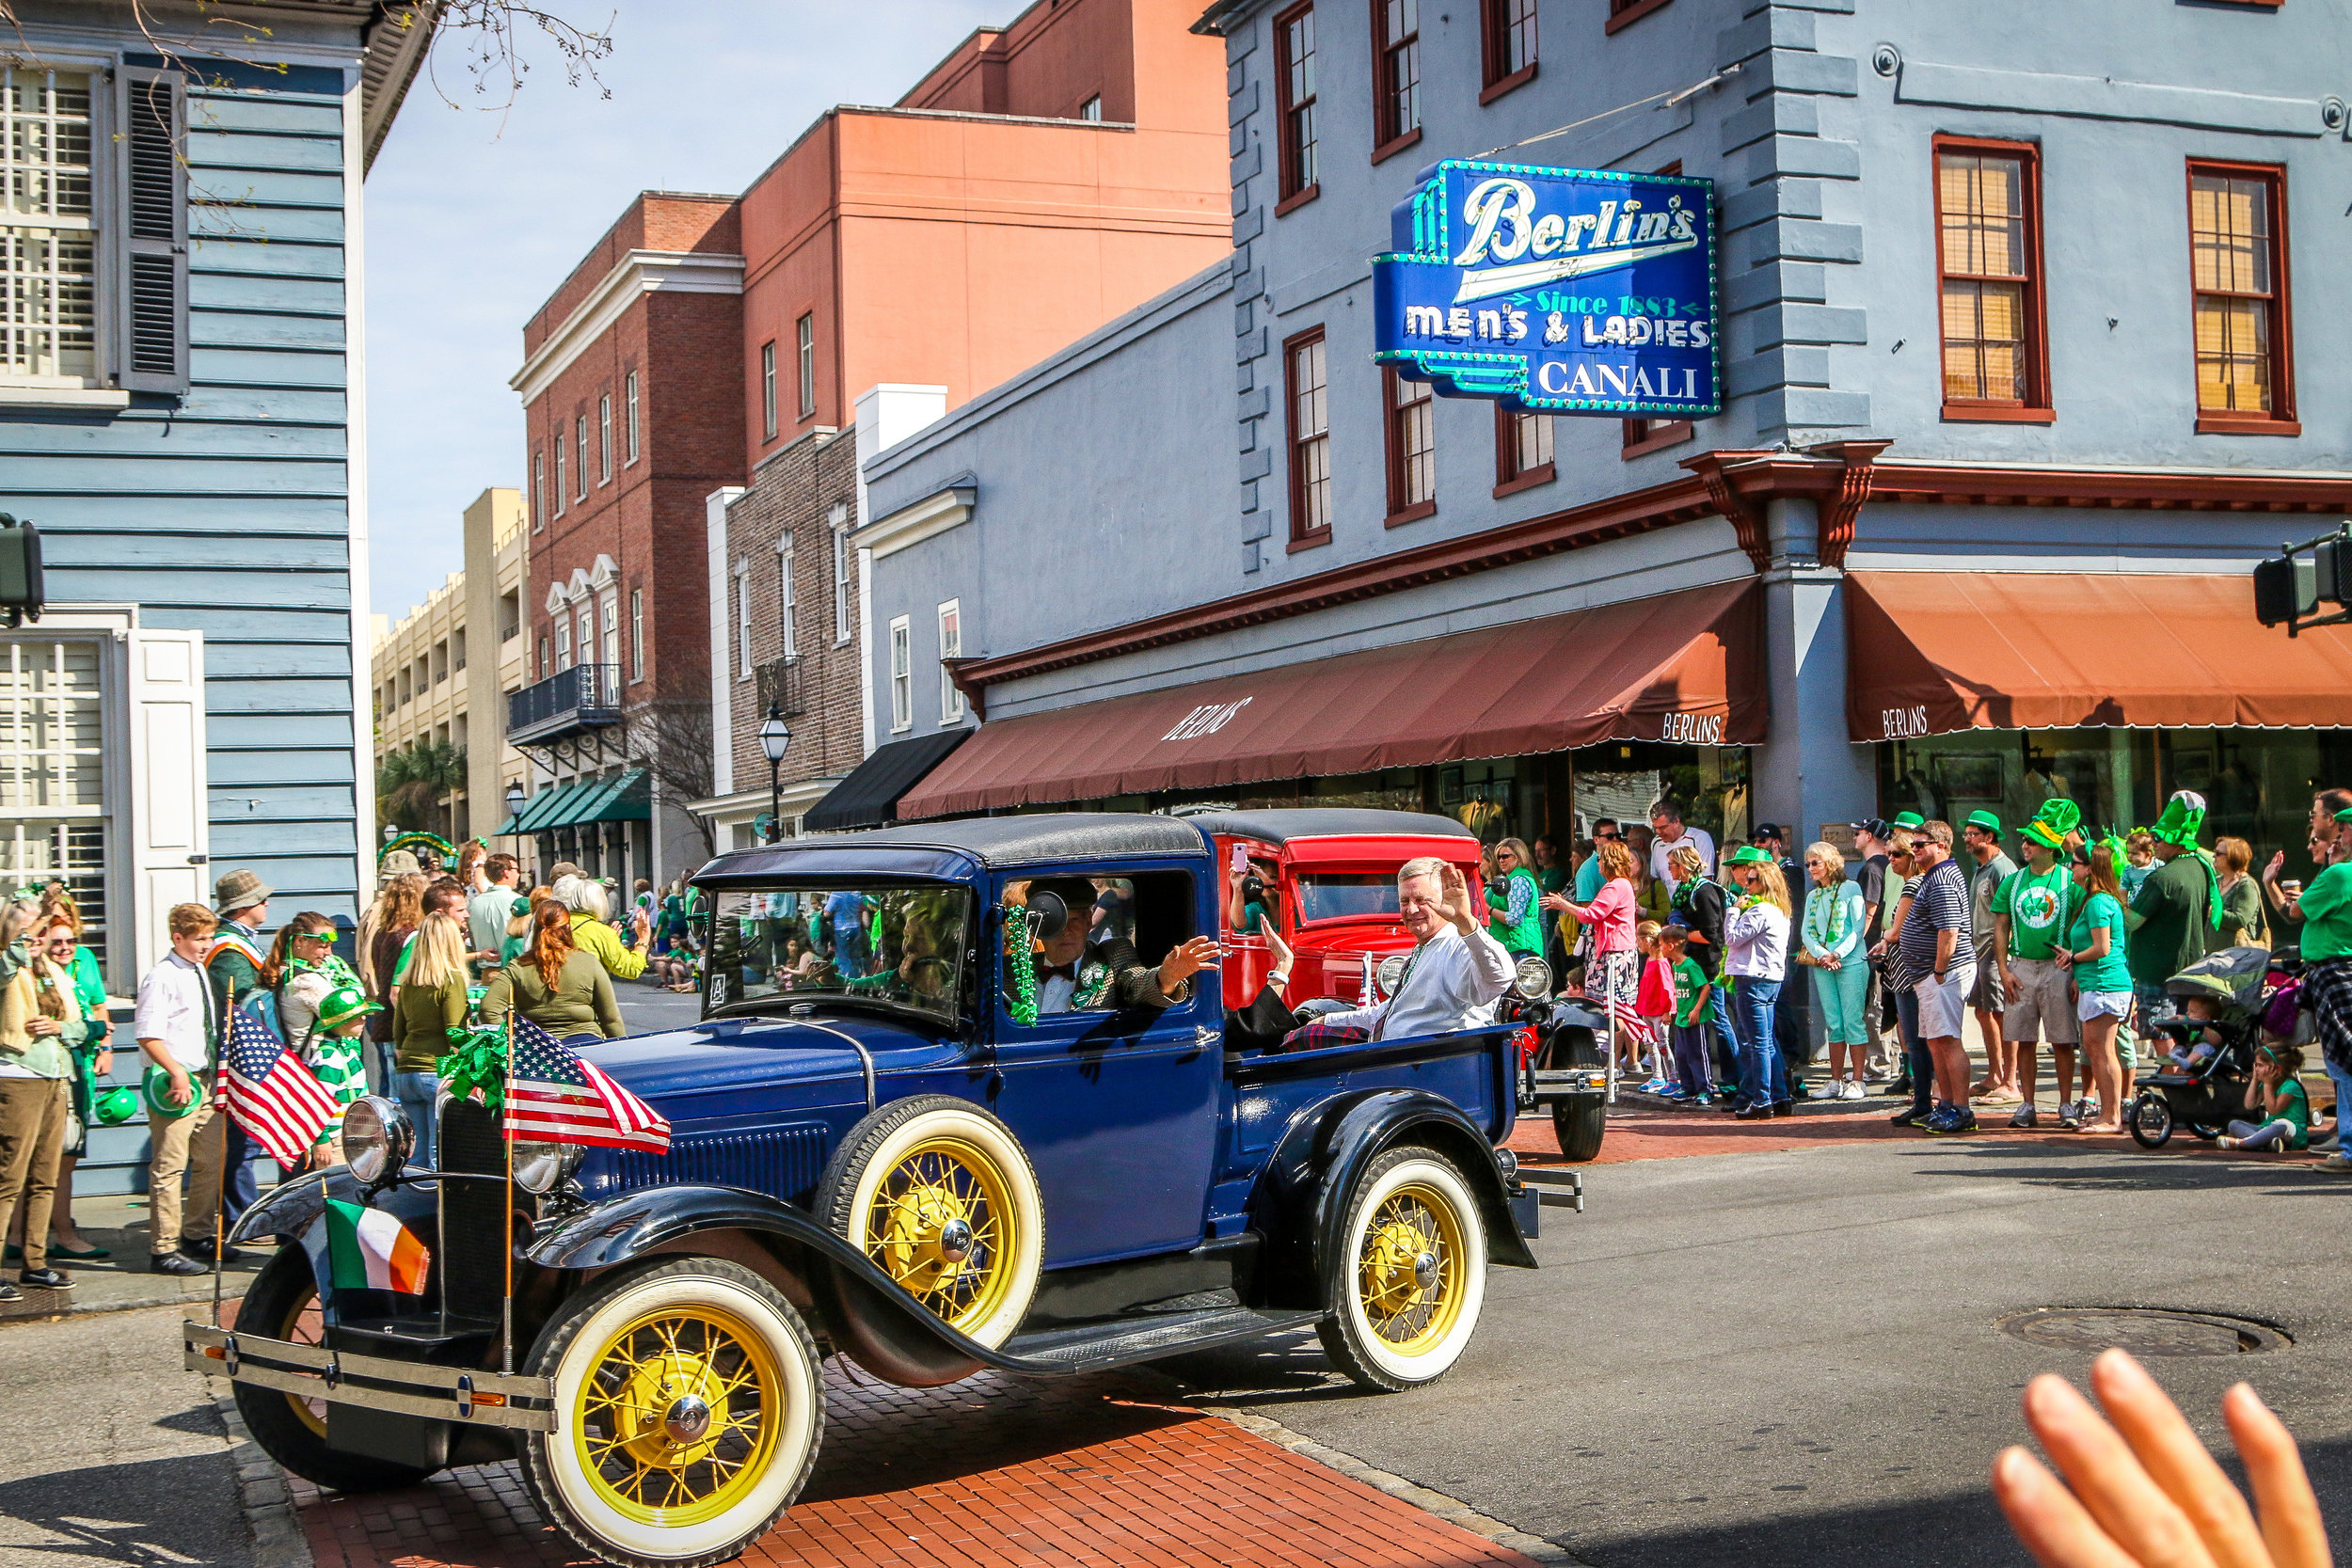 St. Patrick's Day in Charleston